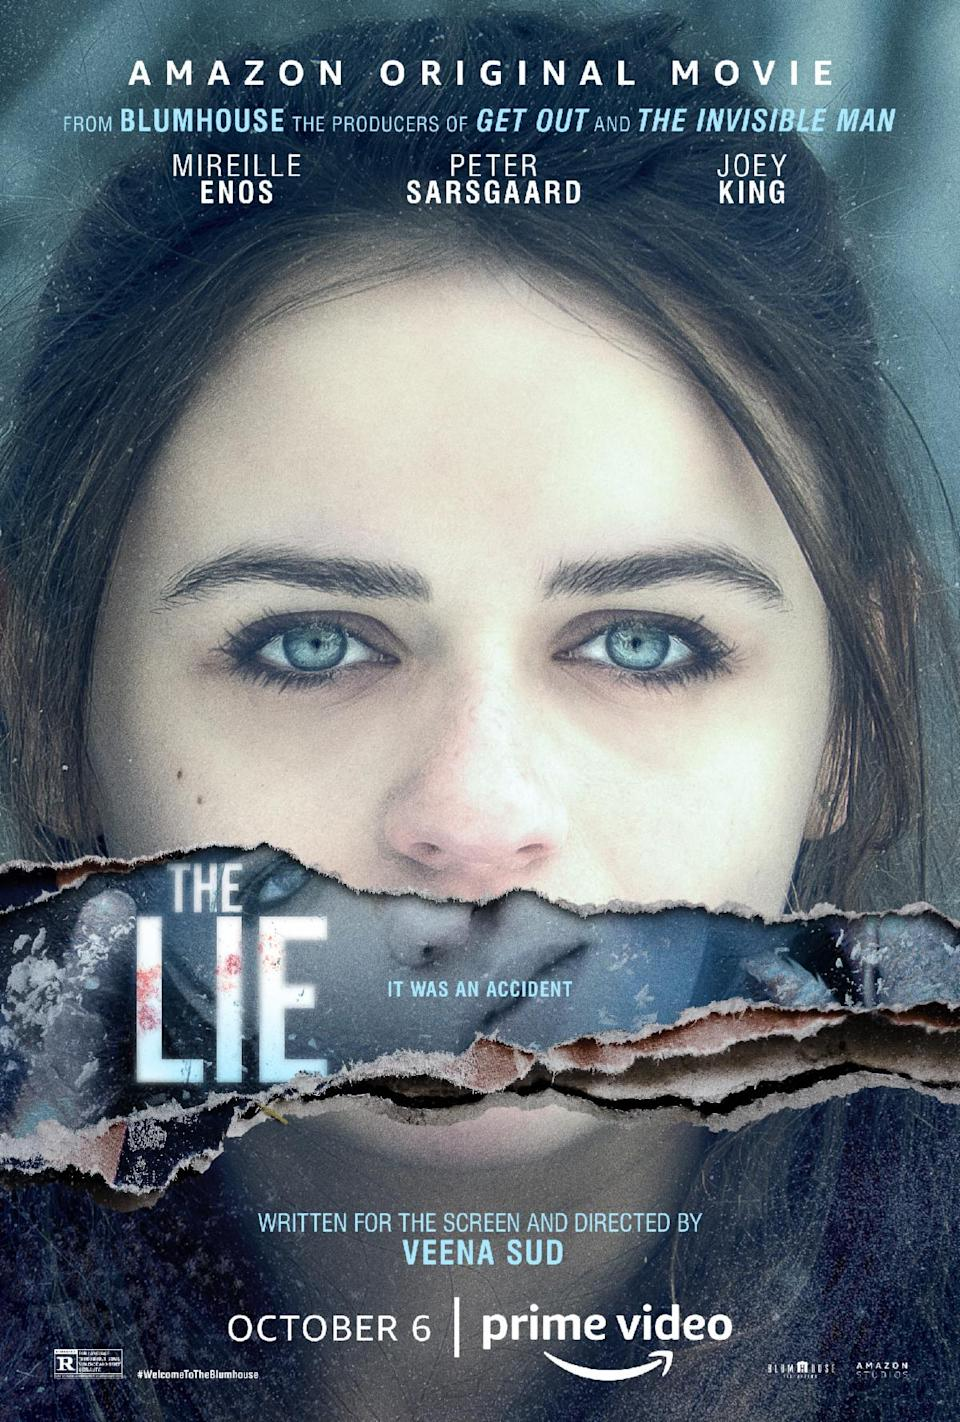 Welcome To The Blumhouse: The Lie (Amazon Prime Video)